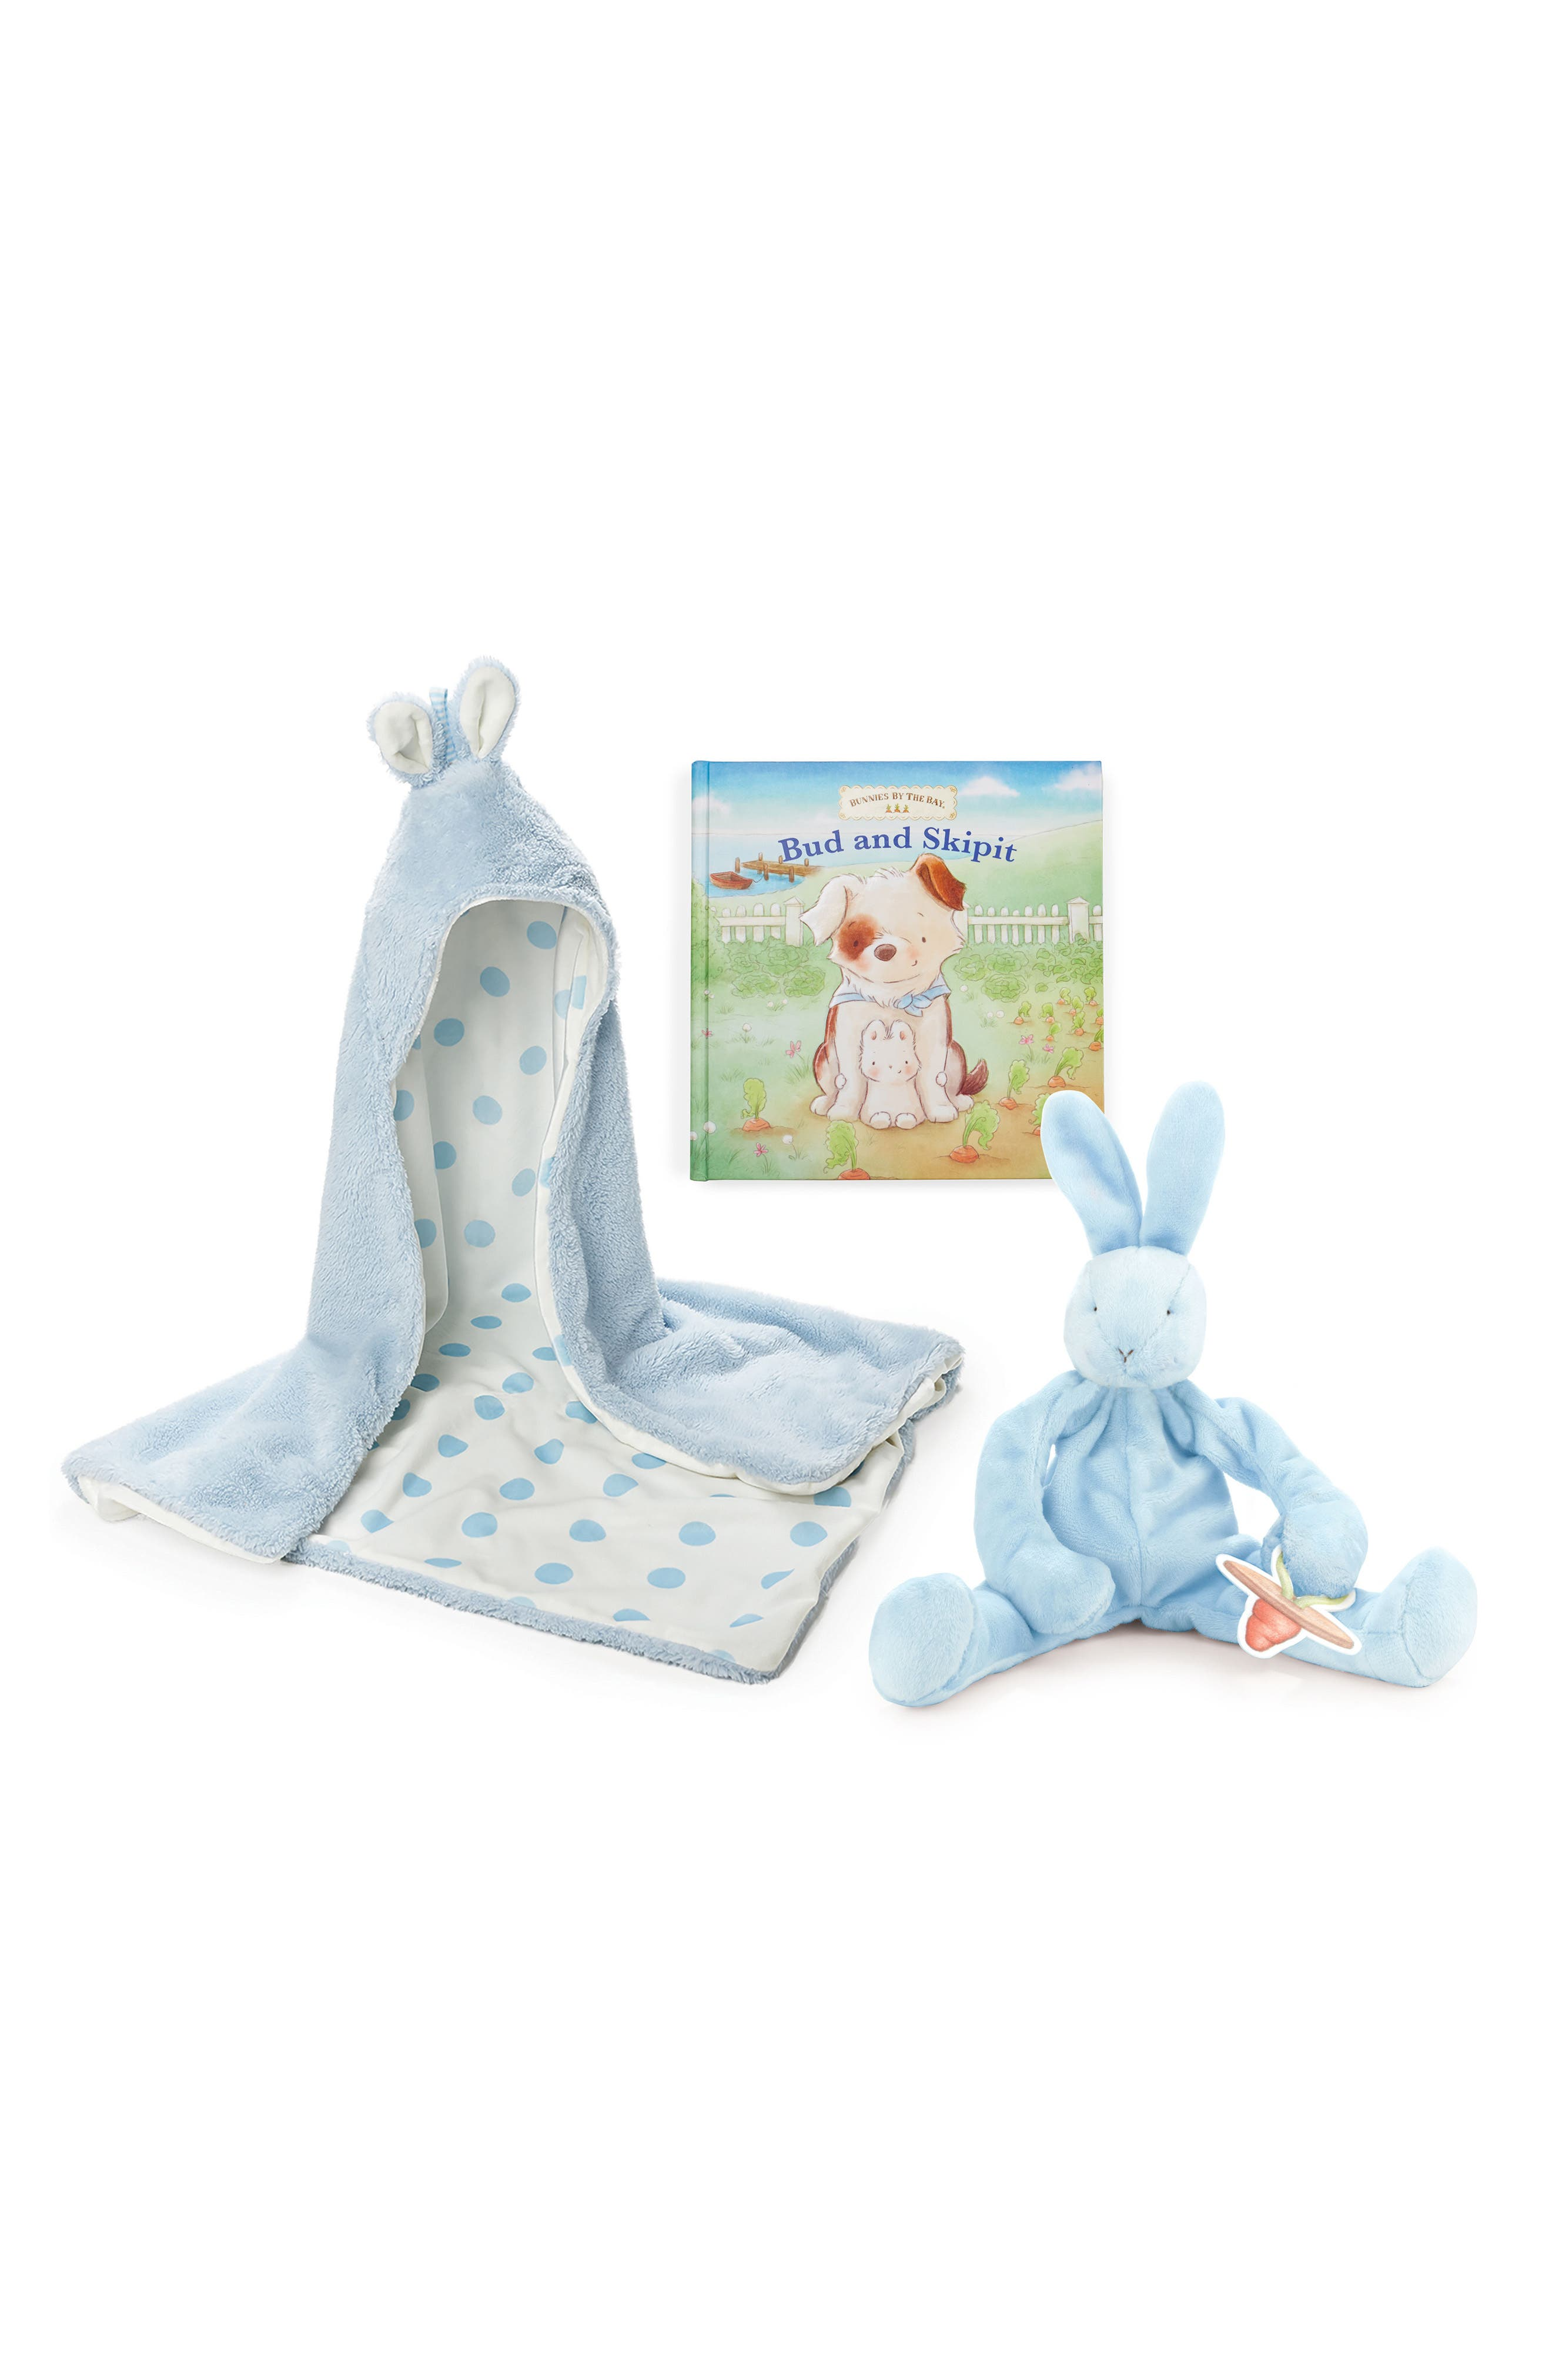 Alternate Image 1 Selected - Bunnies by the Bay Hooded Blanket, Stuffed Animal & Board Book Set